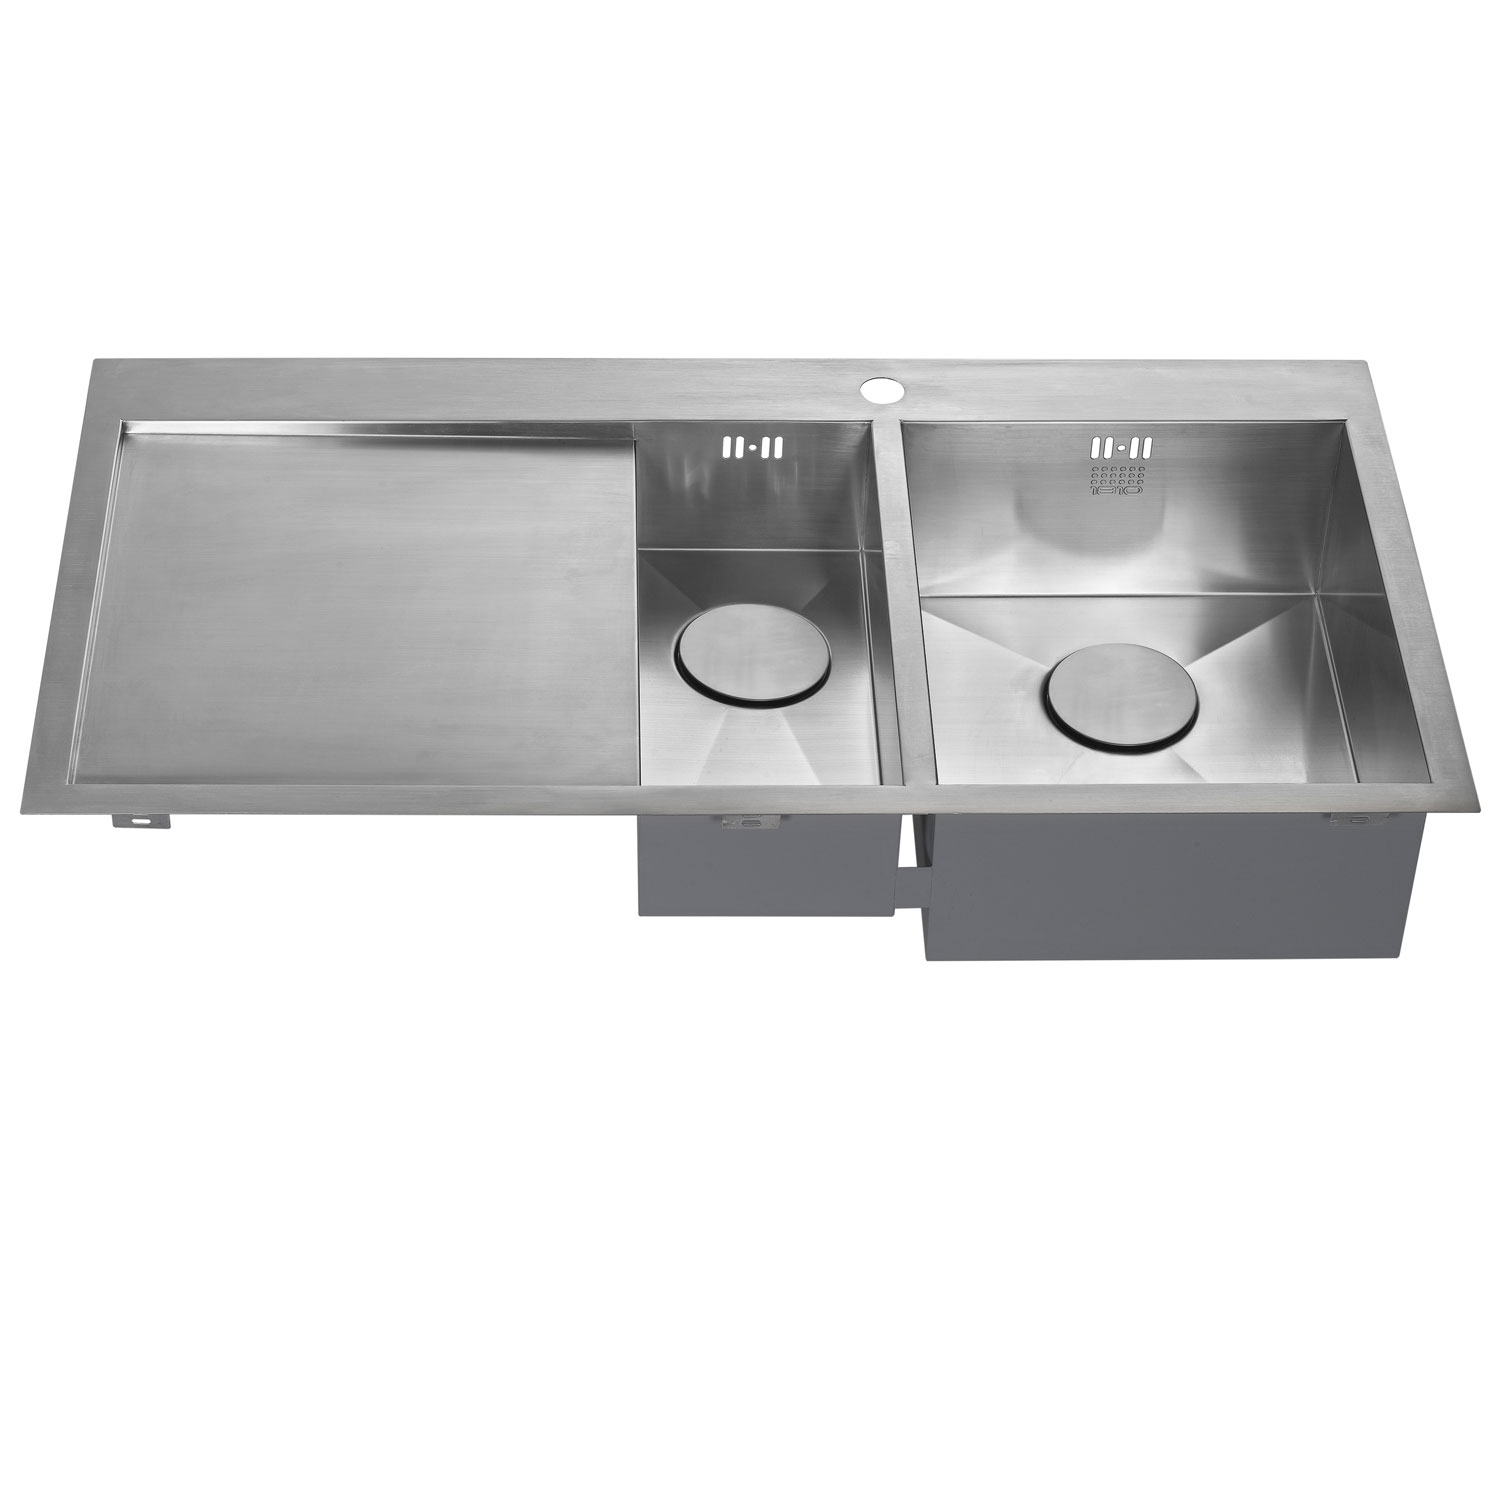 The 1810 Company Zenduo 6 I-F 1.5 Bowl Kitchen Sink - Right Hand-1